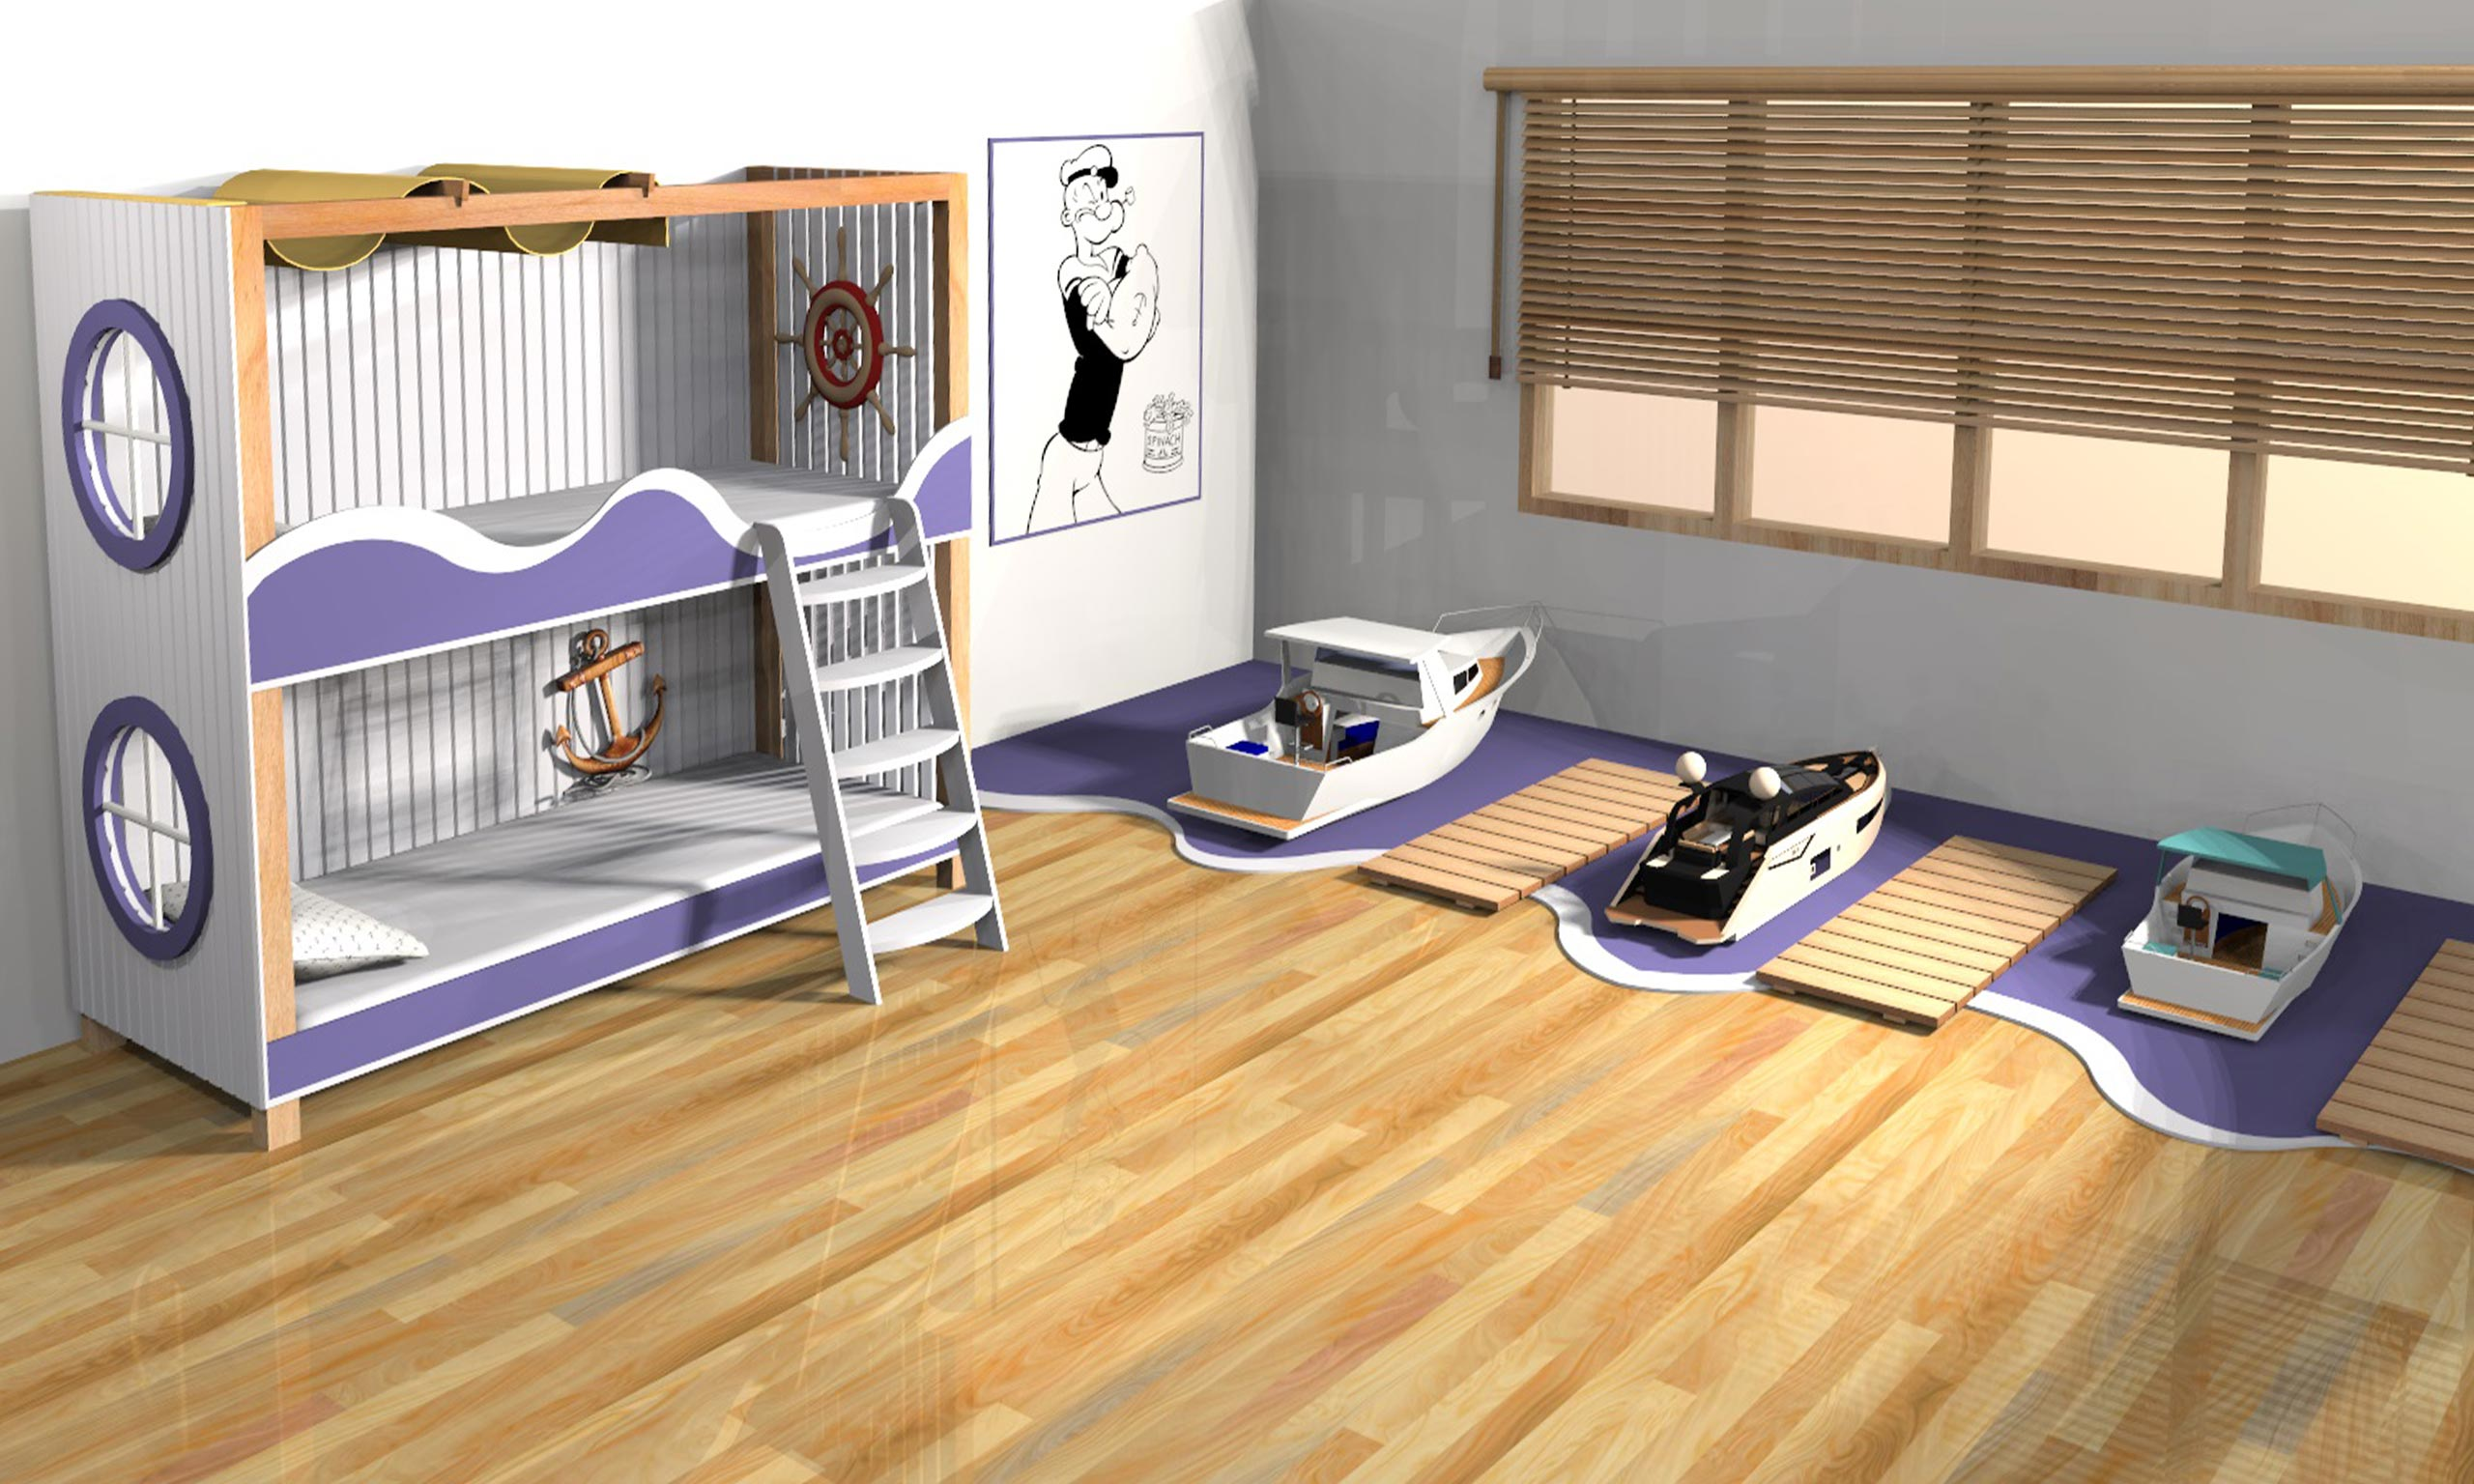 design_kids-room1